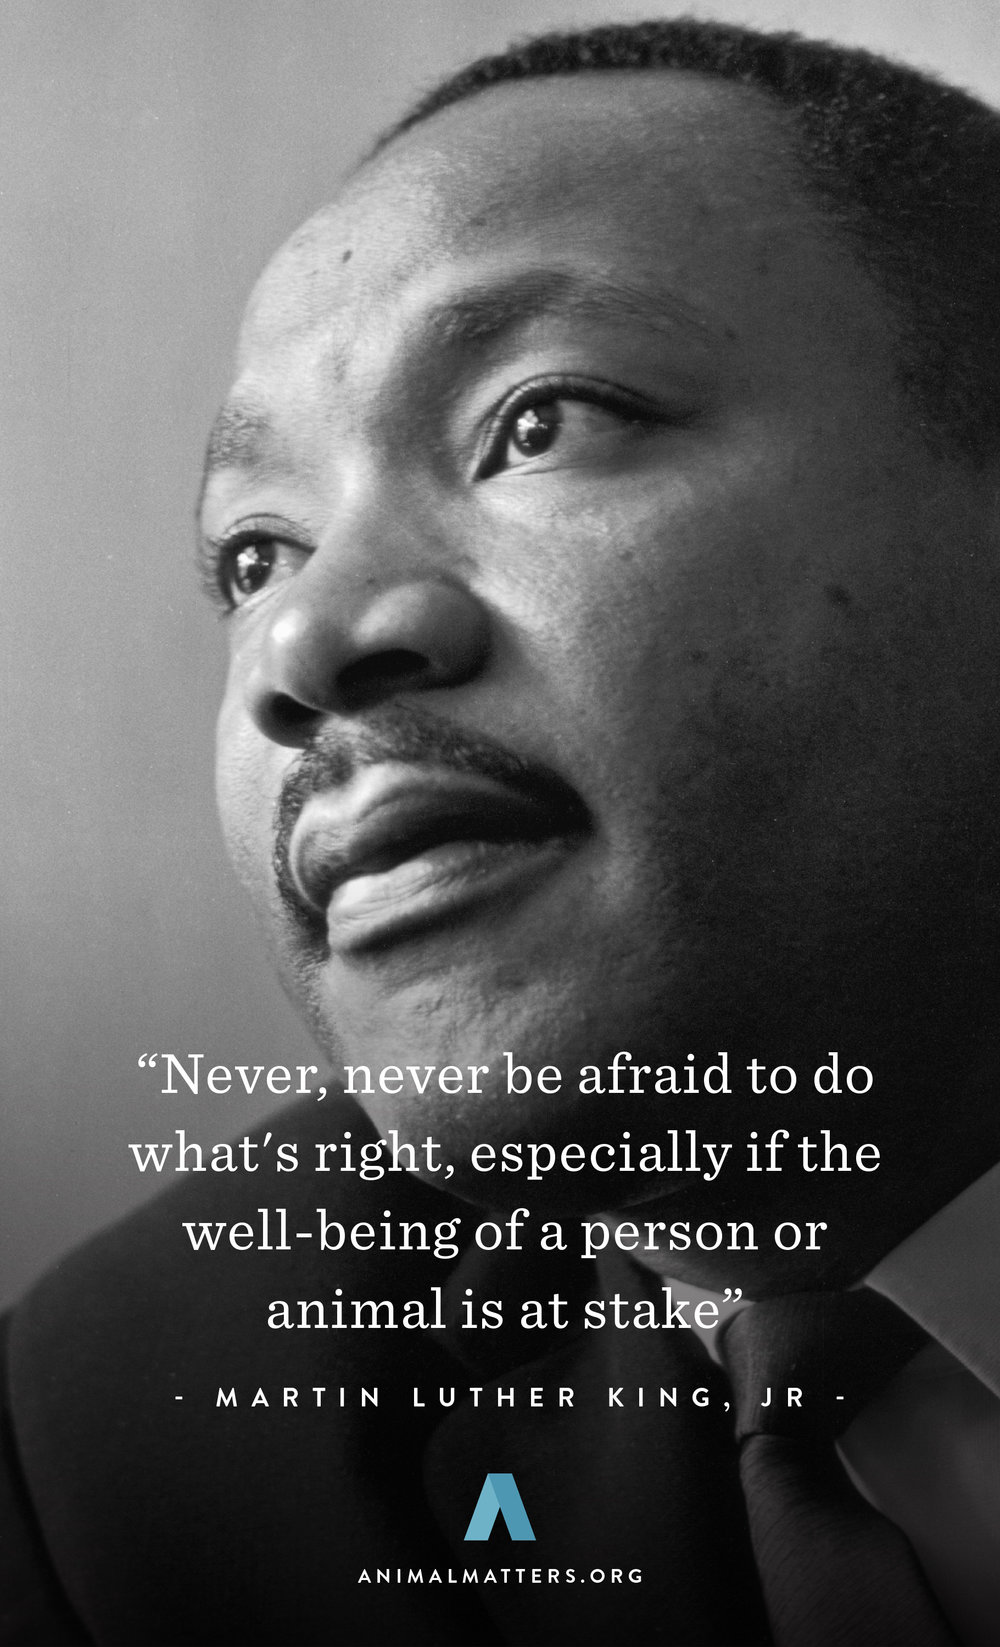 Martin-Luther-King-Jr-Animal-Rights-Quote.jpg